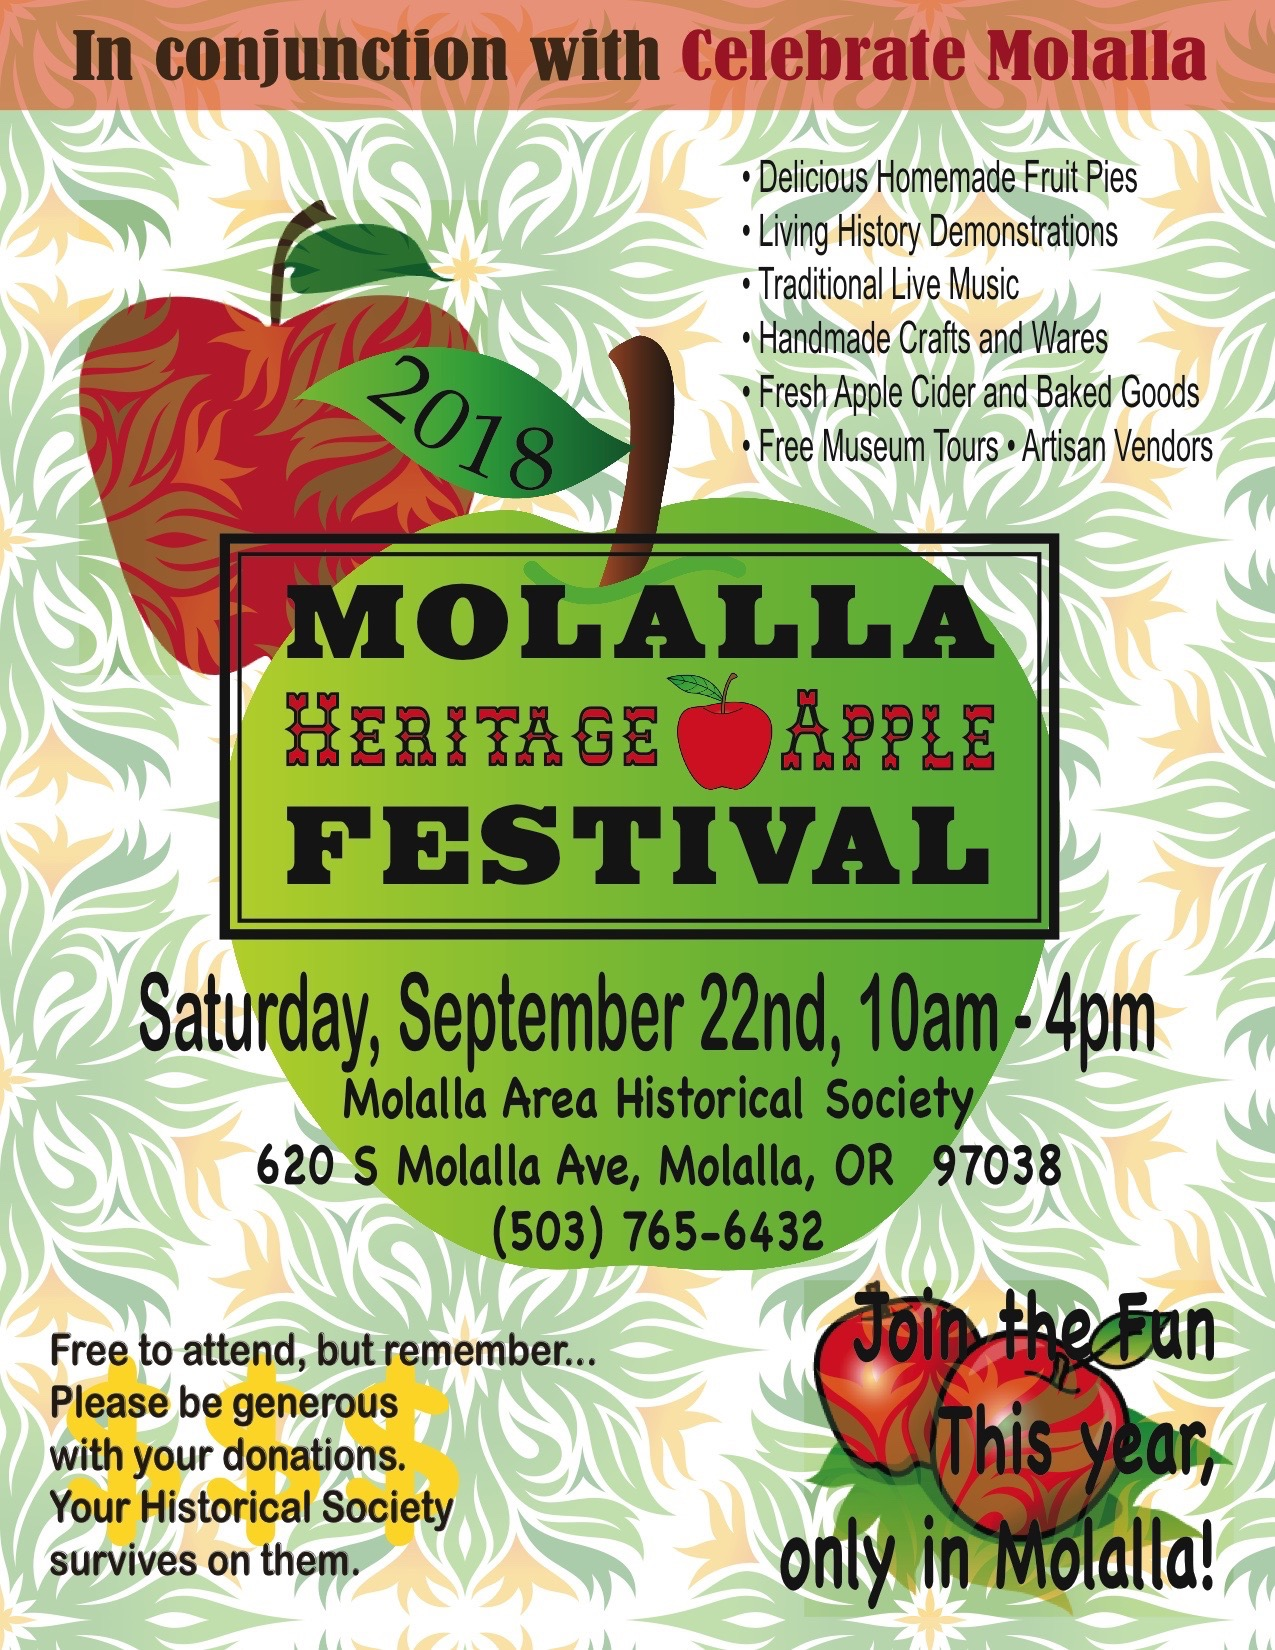 MOLALLA HERITAGE APPLE FESTIVAL!